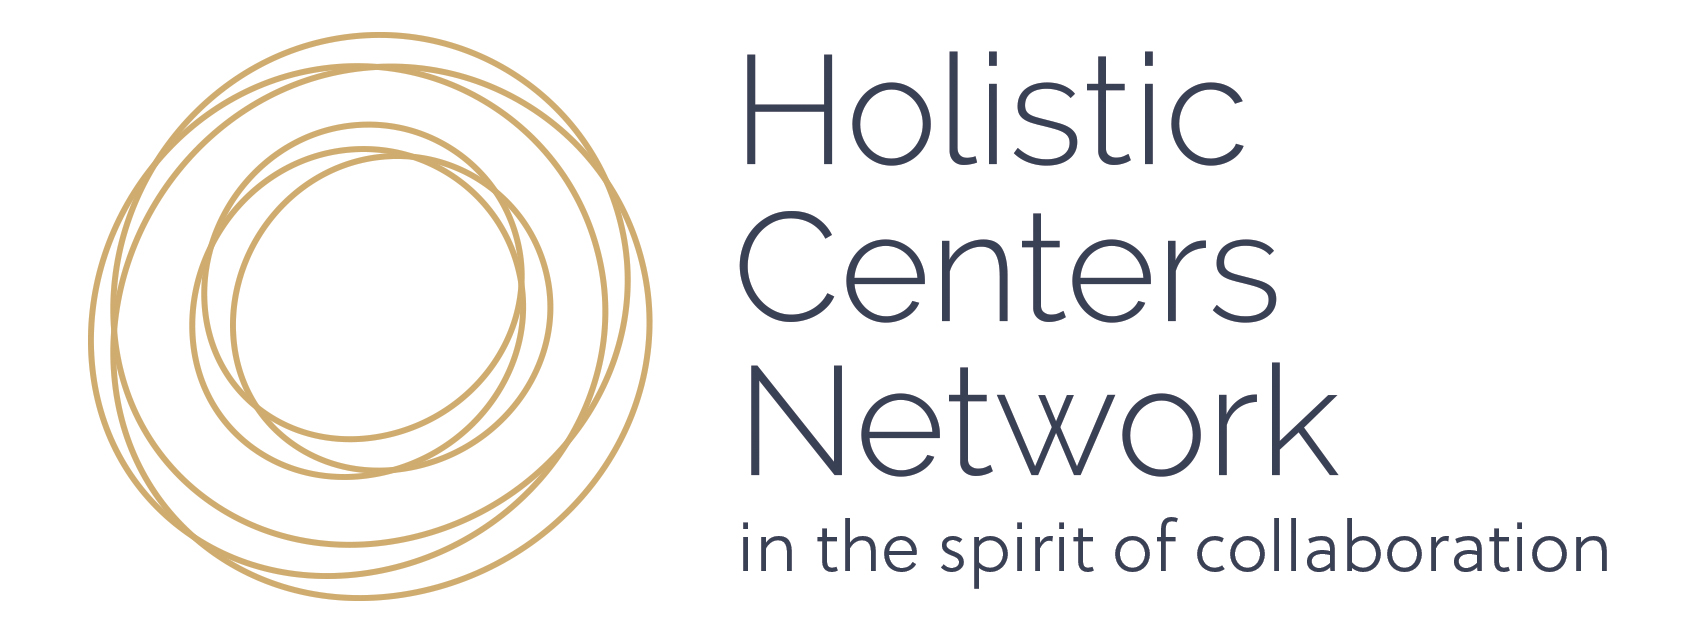 Holistic Centers Network